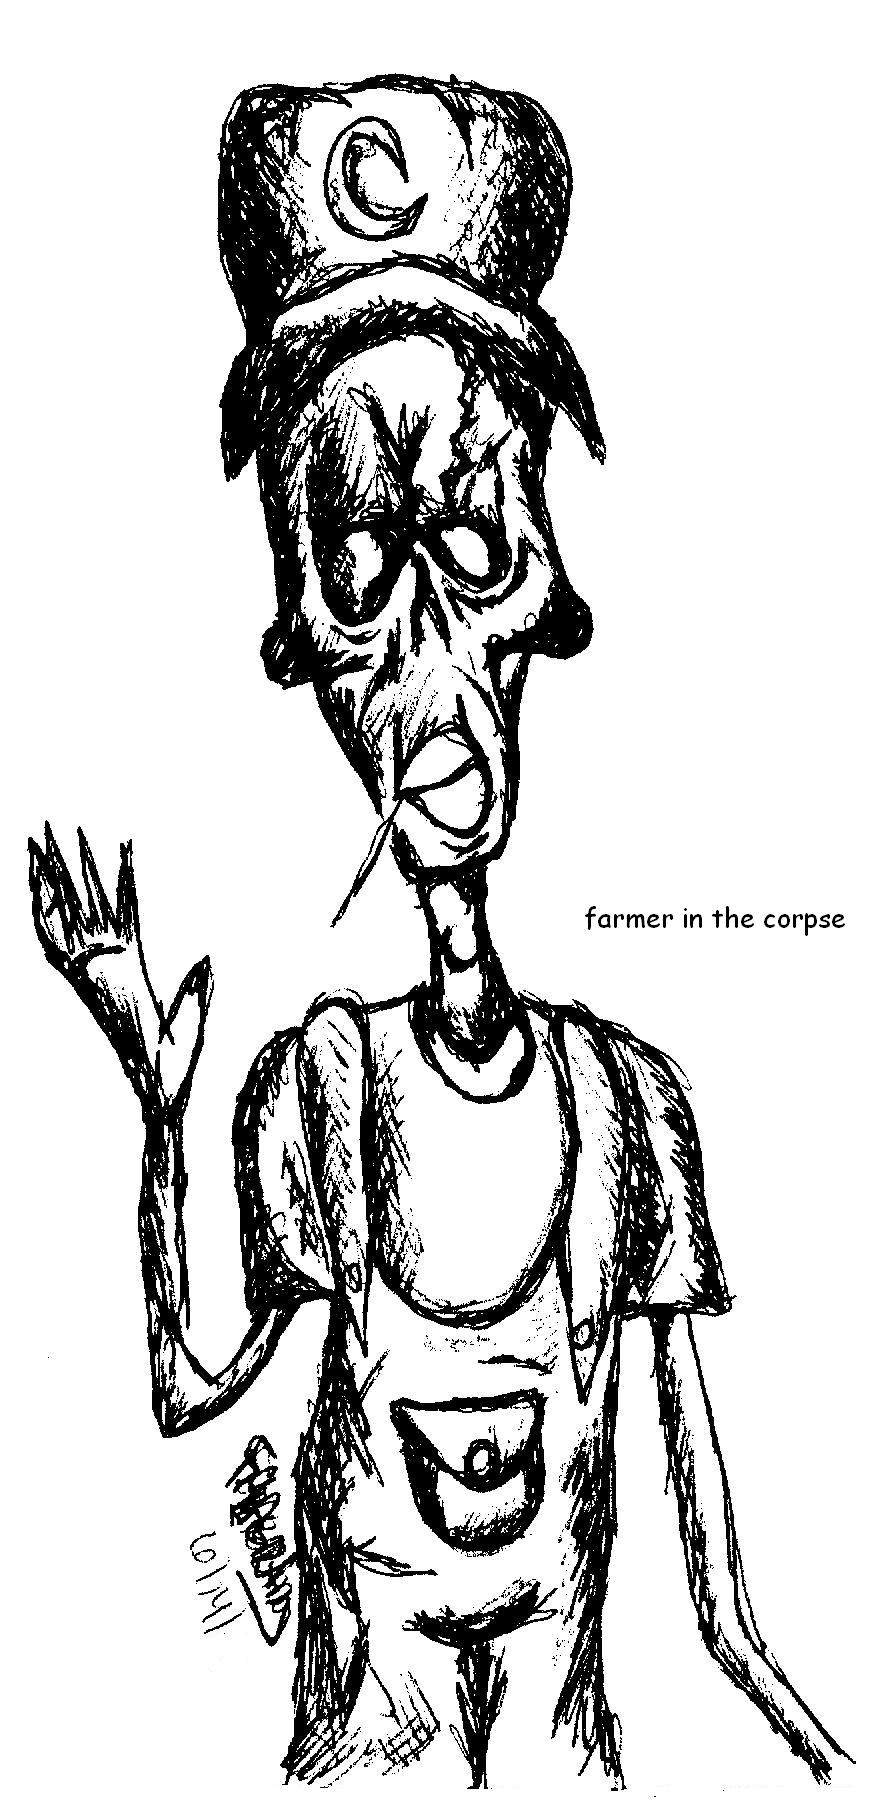 farmer in the corpse